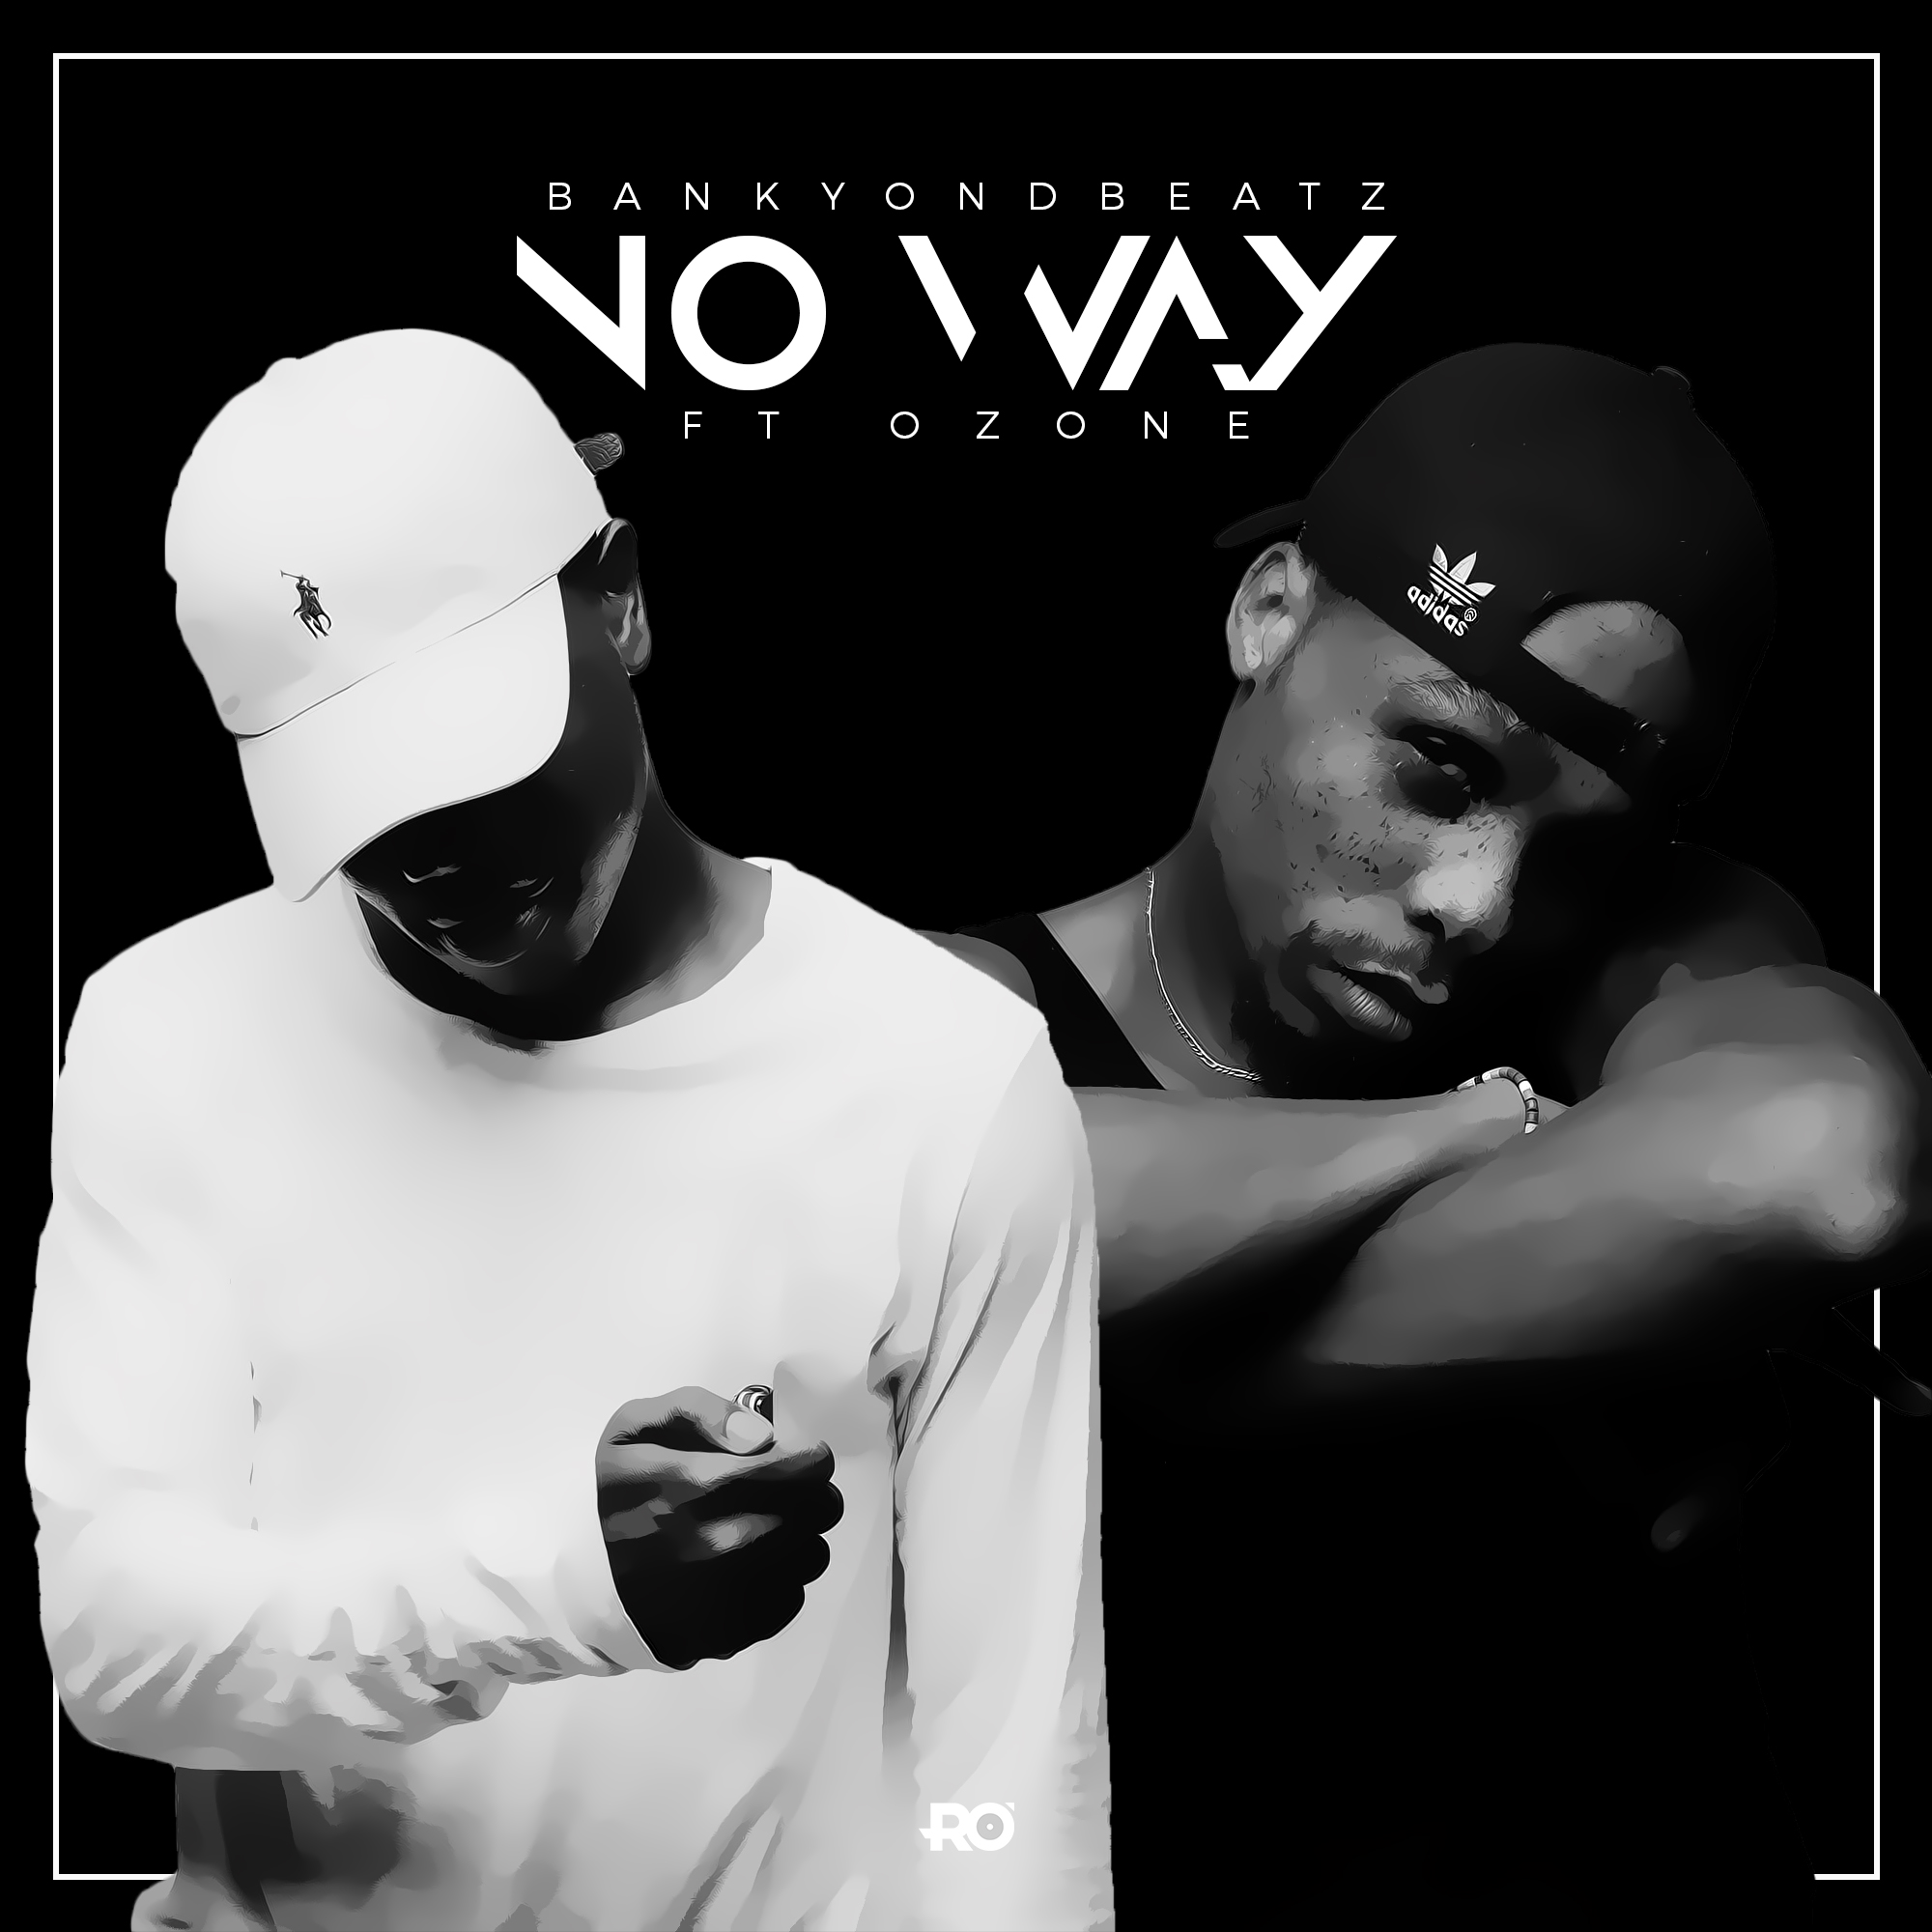 Bankyondbeatz - No Way ft. OZone